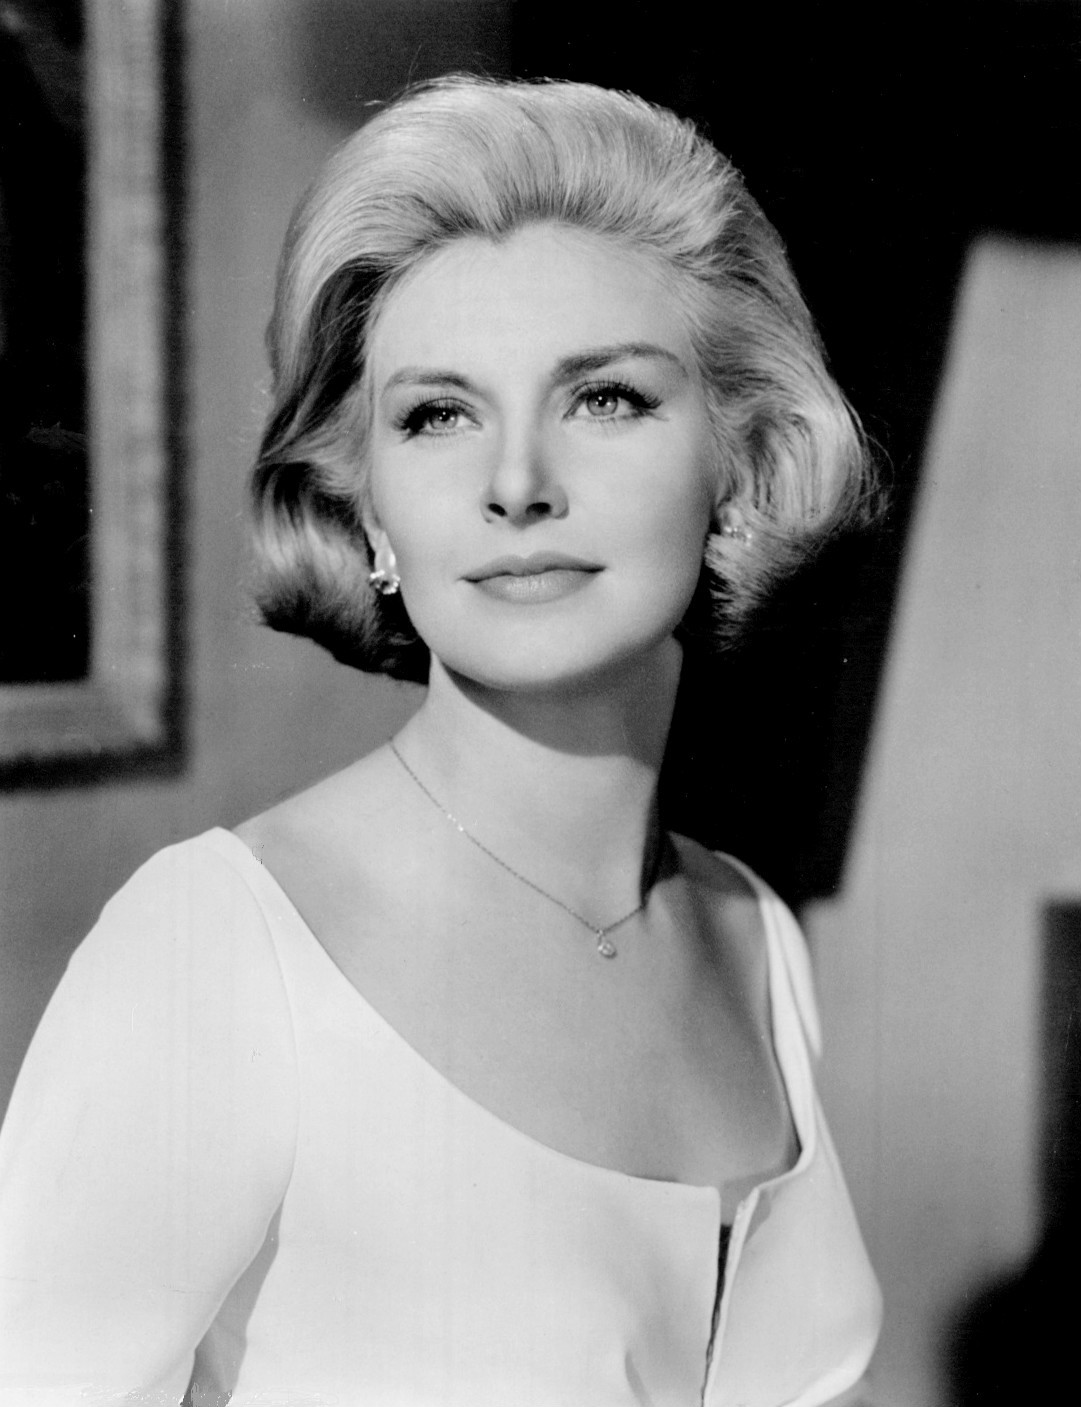 Alzheimer's Disease Taking Joanne Woodward